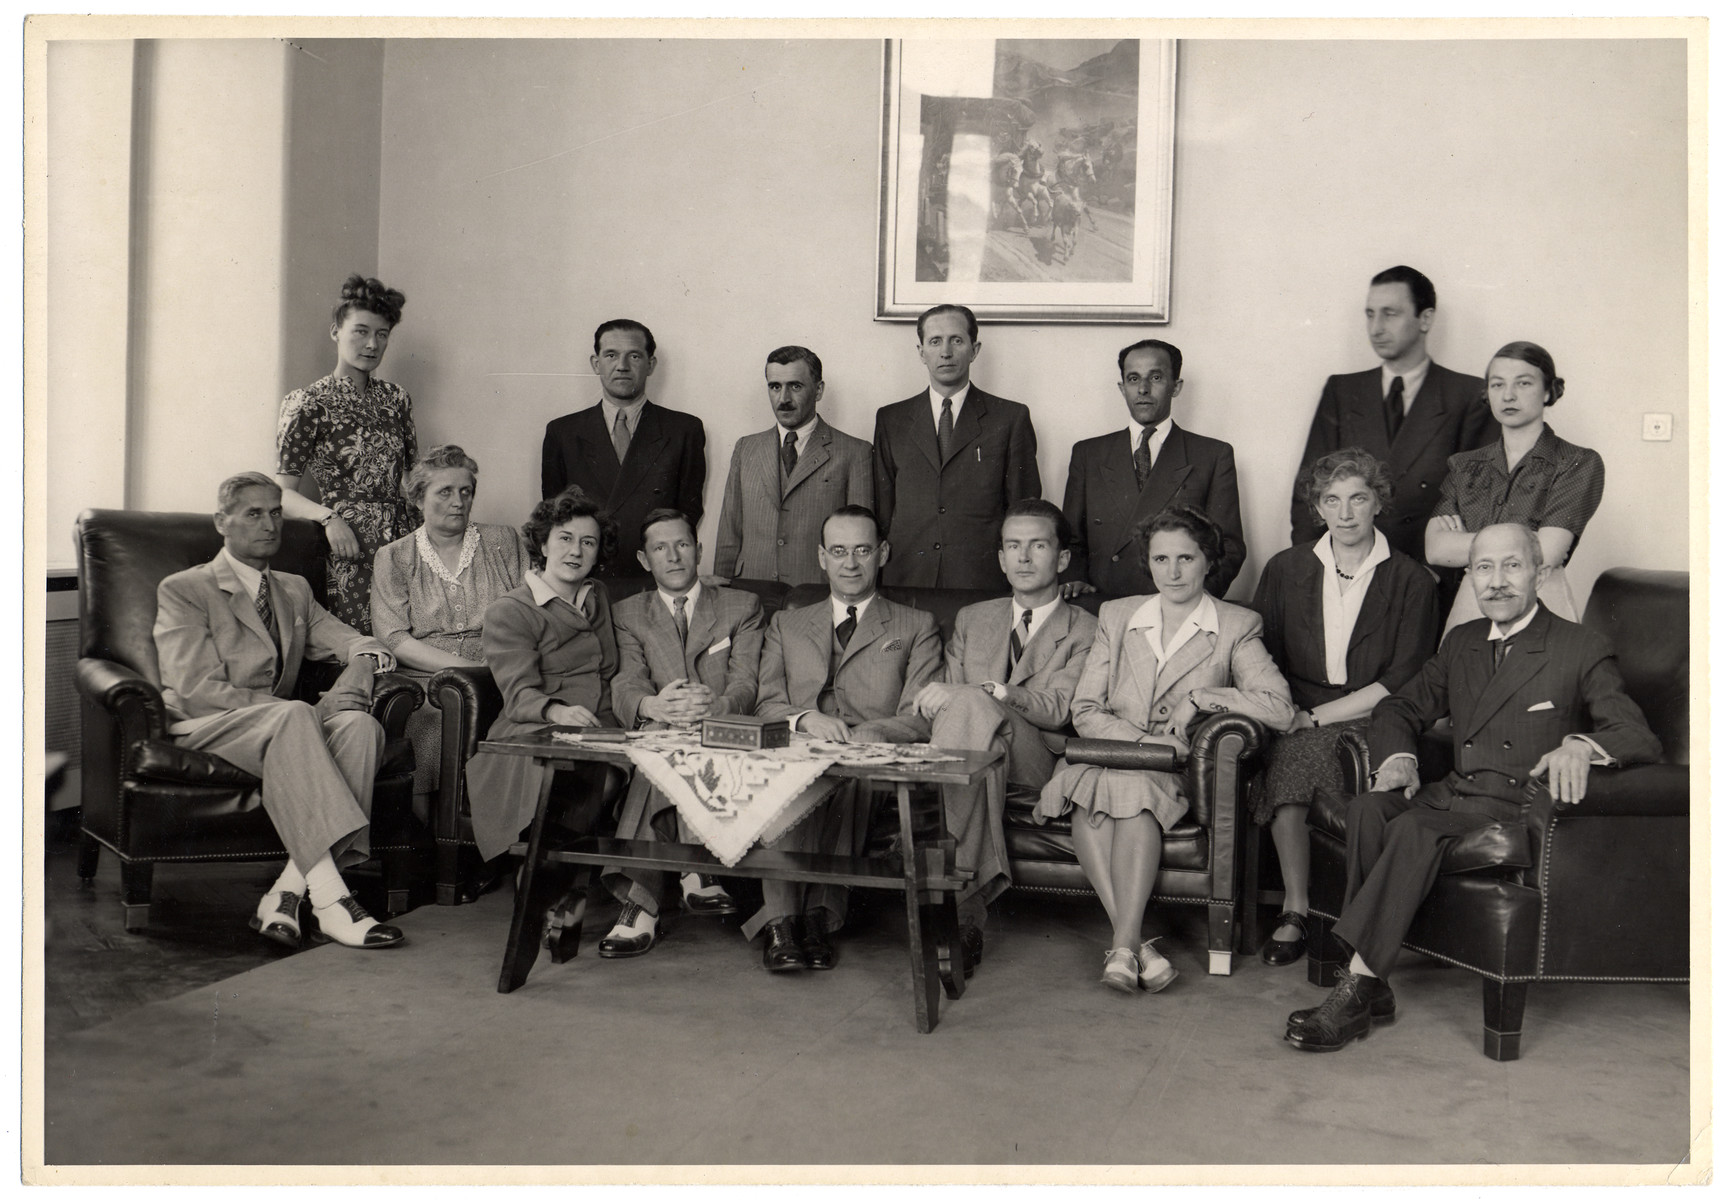 Group portrait of the Swiss consulate staff in Budapest.  Seated in the center is the Consul General, Carl Lutz.  Standing behind Mr.Lutz is his chauffeur Charles Szluha. Seated on the left is Mr. Steiner.